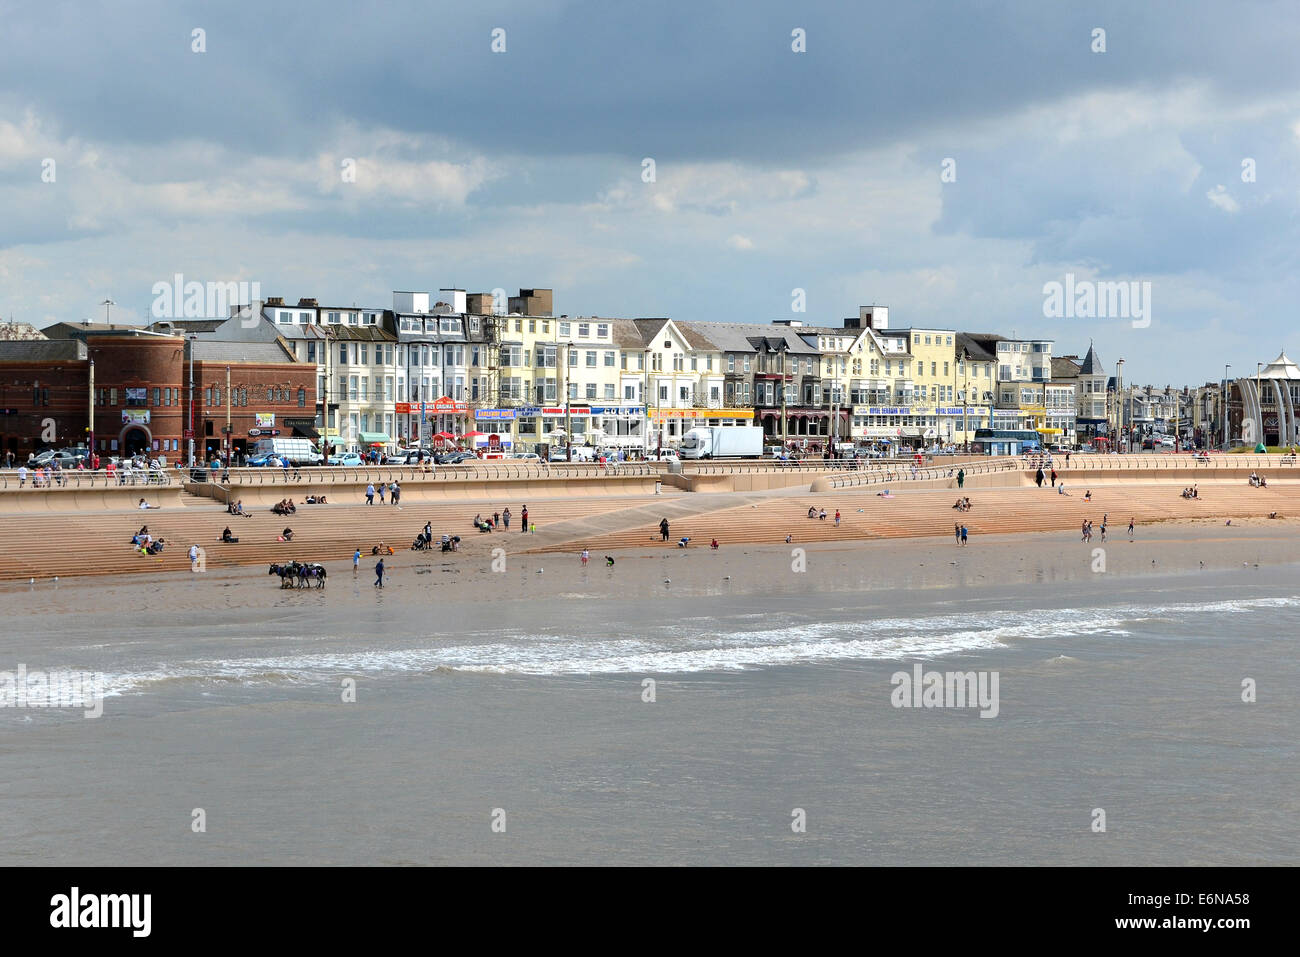 Hotels on the seafront at Blackpool in Lancashire, UK - Stock Image